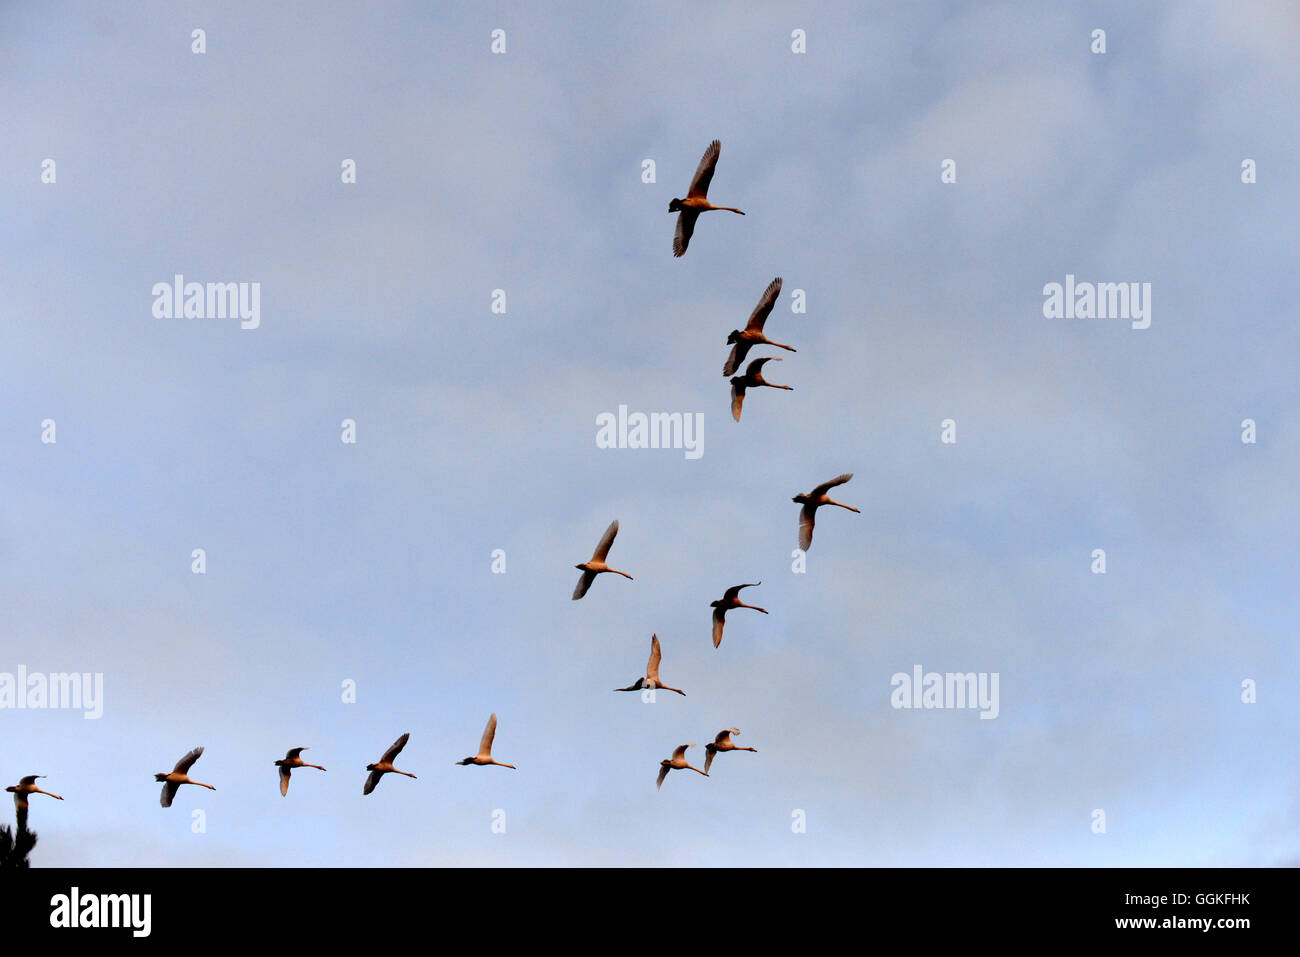 Birds going to warmer country, making skein in the sky - Stock Image